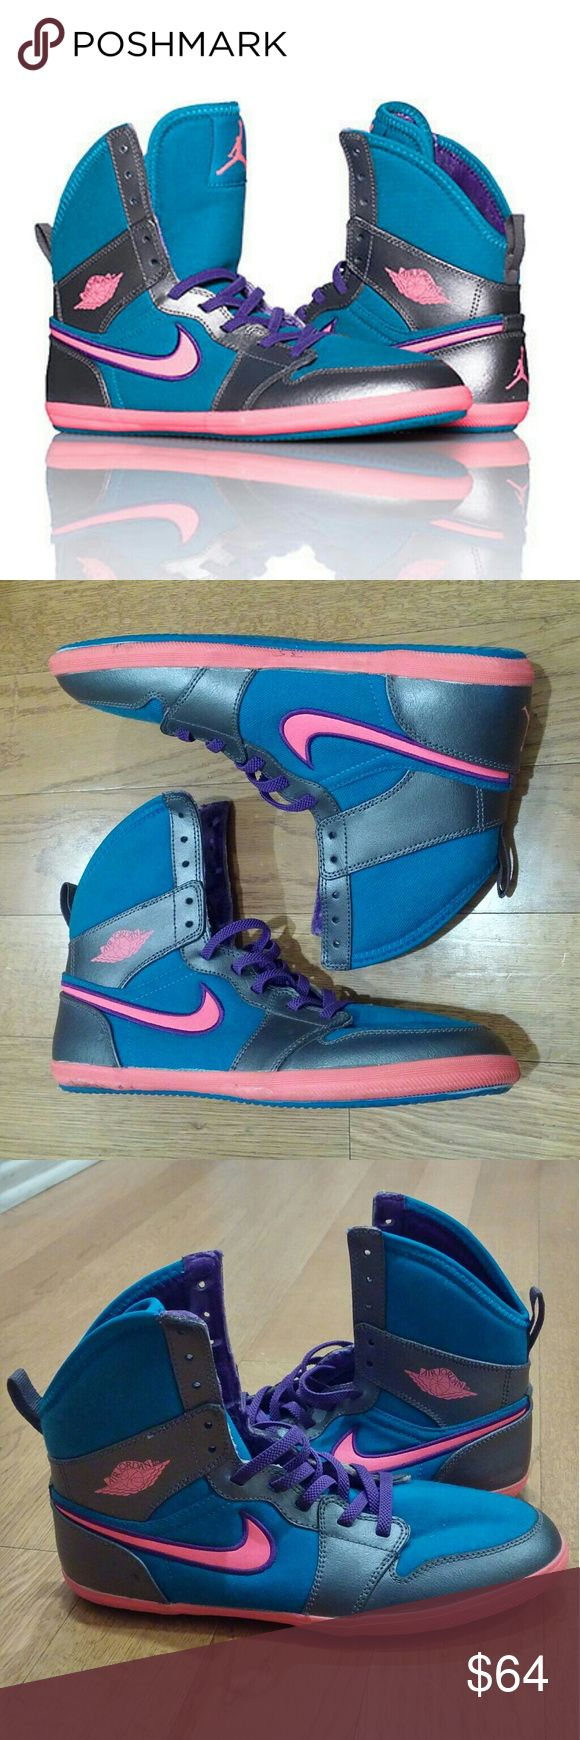 New Nike Jordan 1 skinny high shoes Nike JORDAN High top kids youth boxing style shoes. Size 5Y. (I can fit at a size women 5.5/6 for reference). Color: tropical teal, digital pink, dark grey. Lace up closure. Padded tongue with JORDAN jumpman logo. Signature affiliate NIKE swoosh on sides. Narrow design. New without box, never worn. Jordan Shoes Athletic Shoes